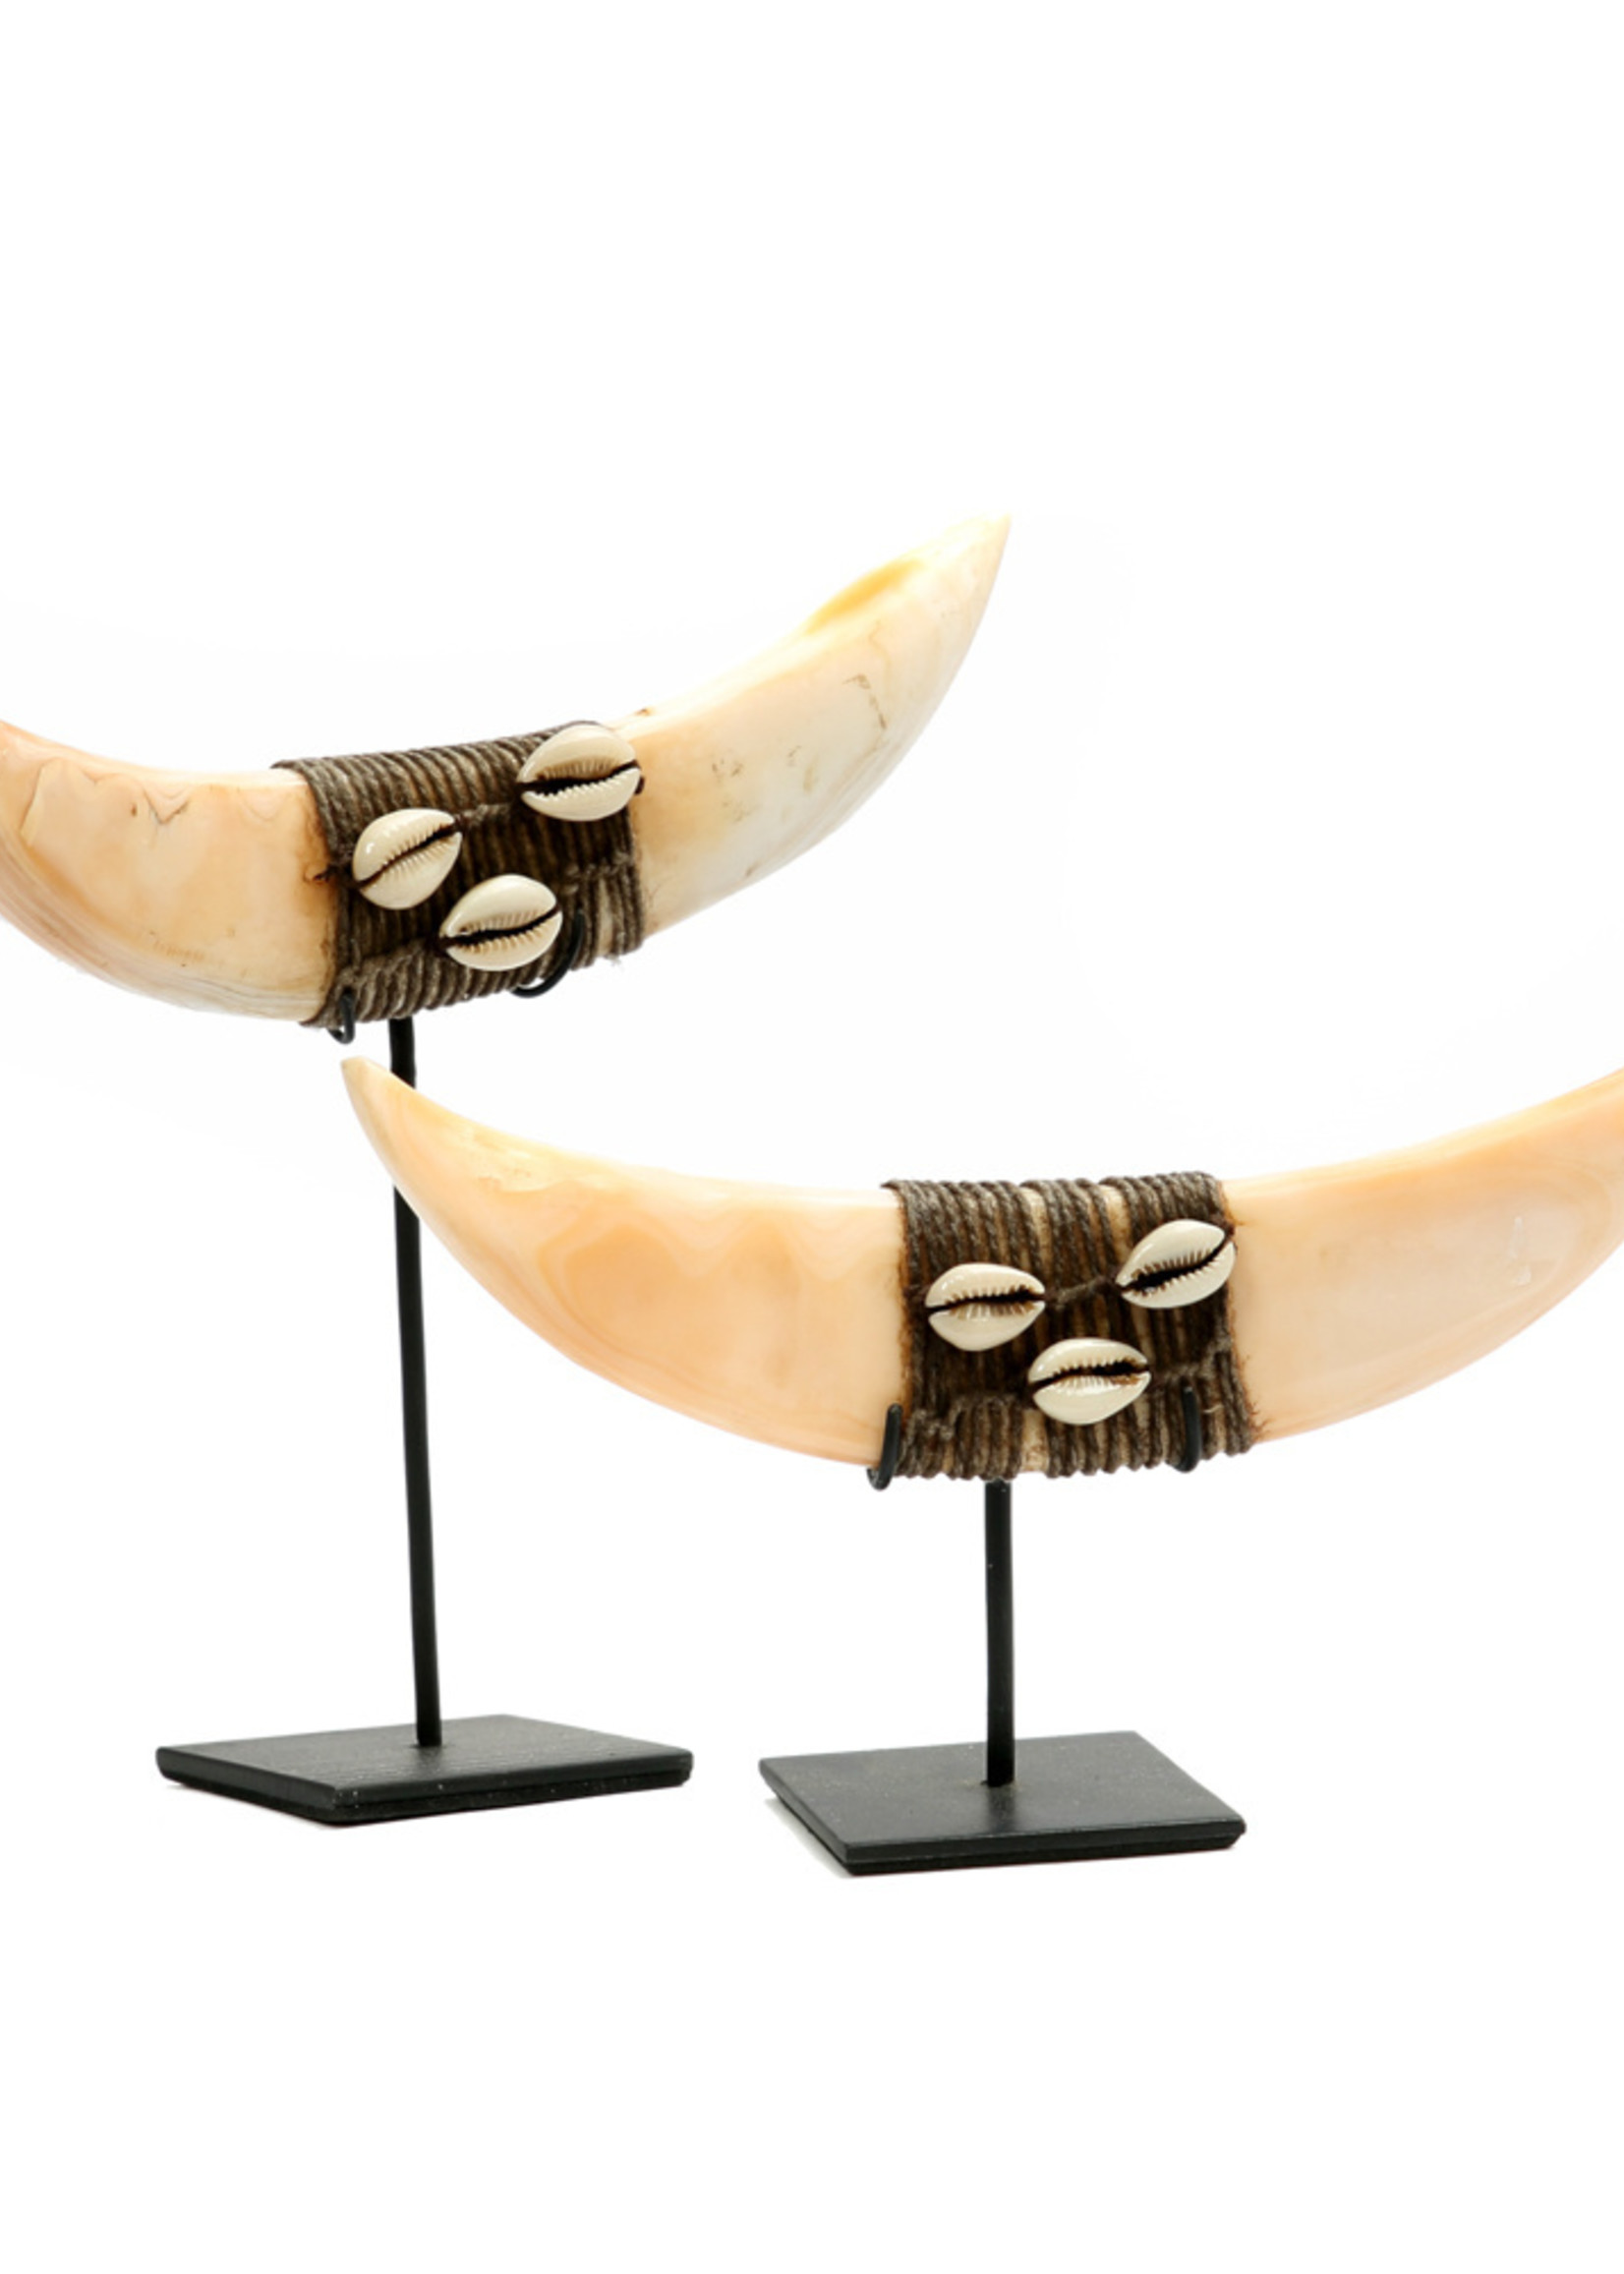 The Horn Shell On Stand